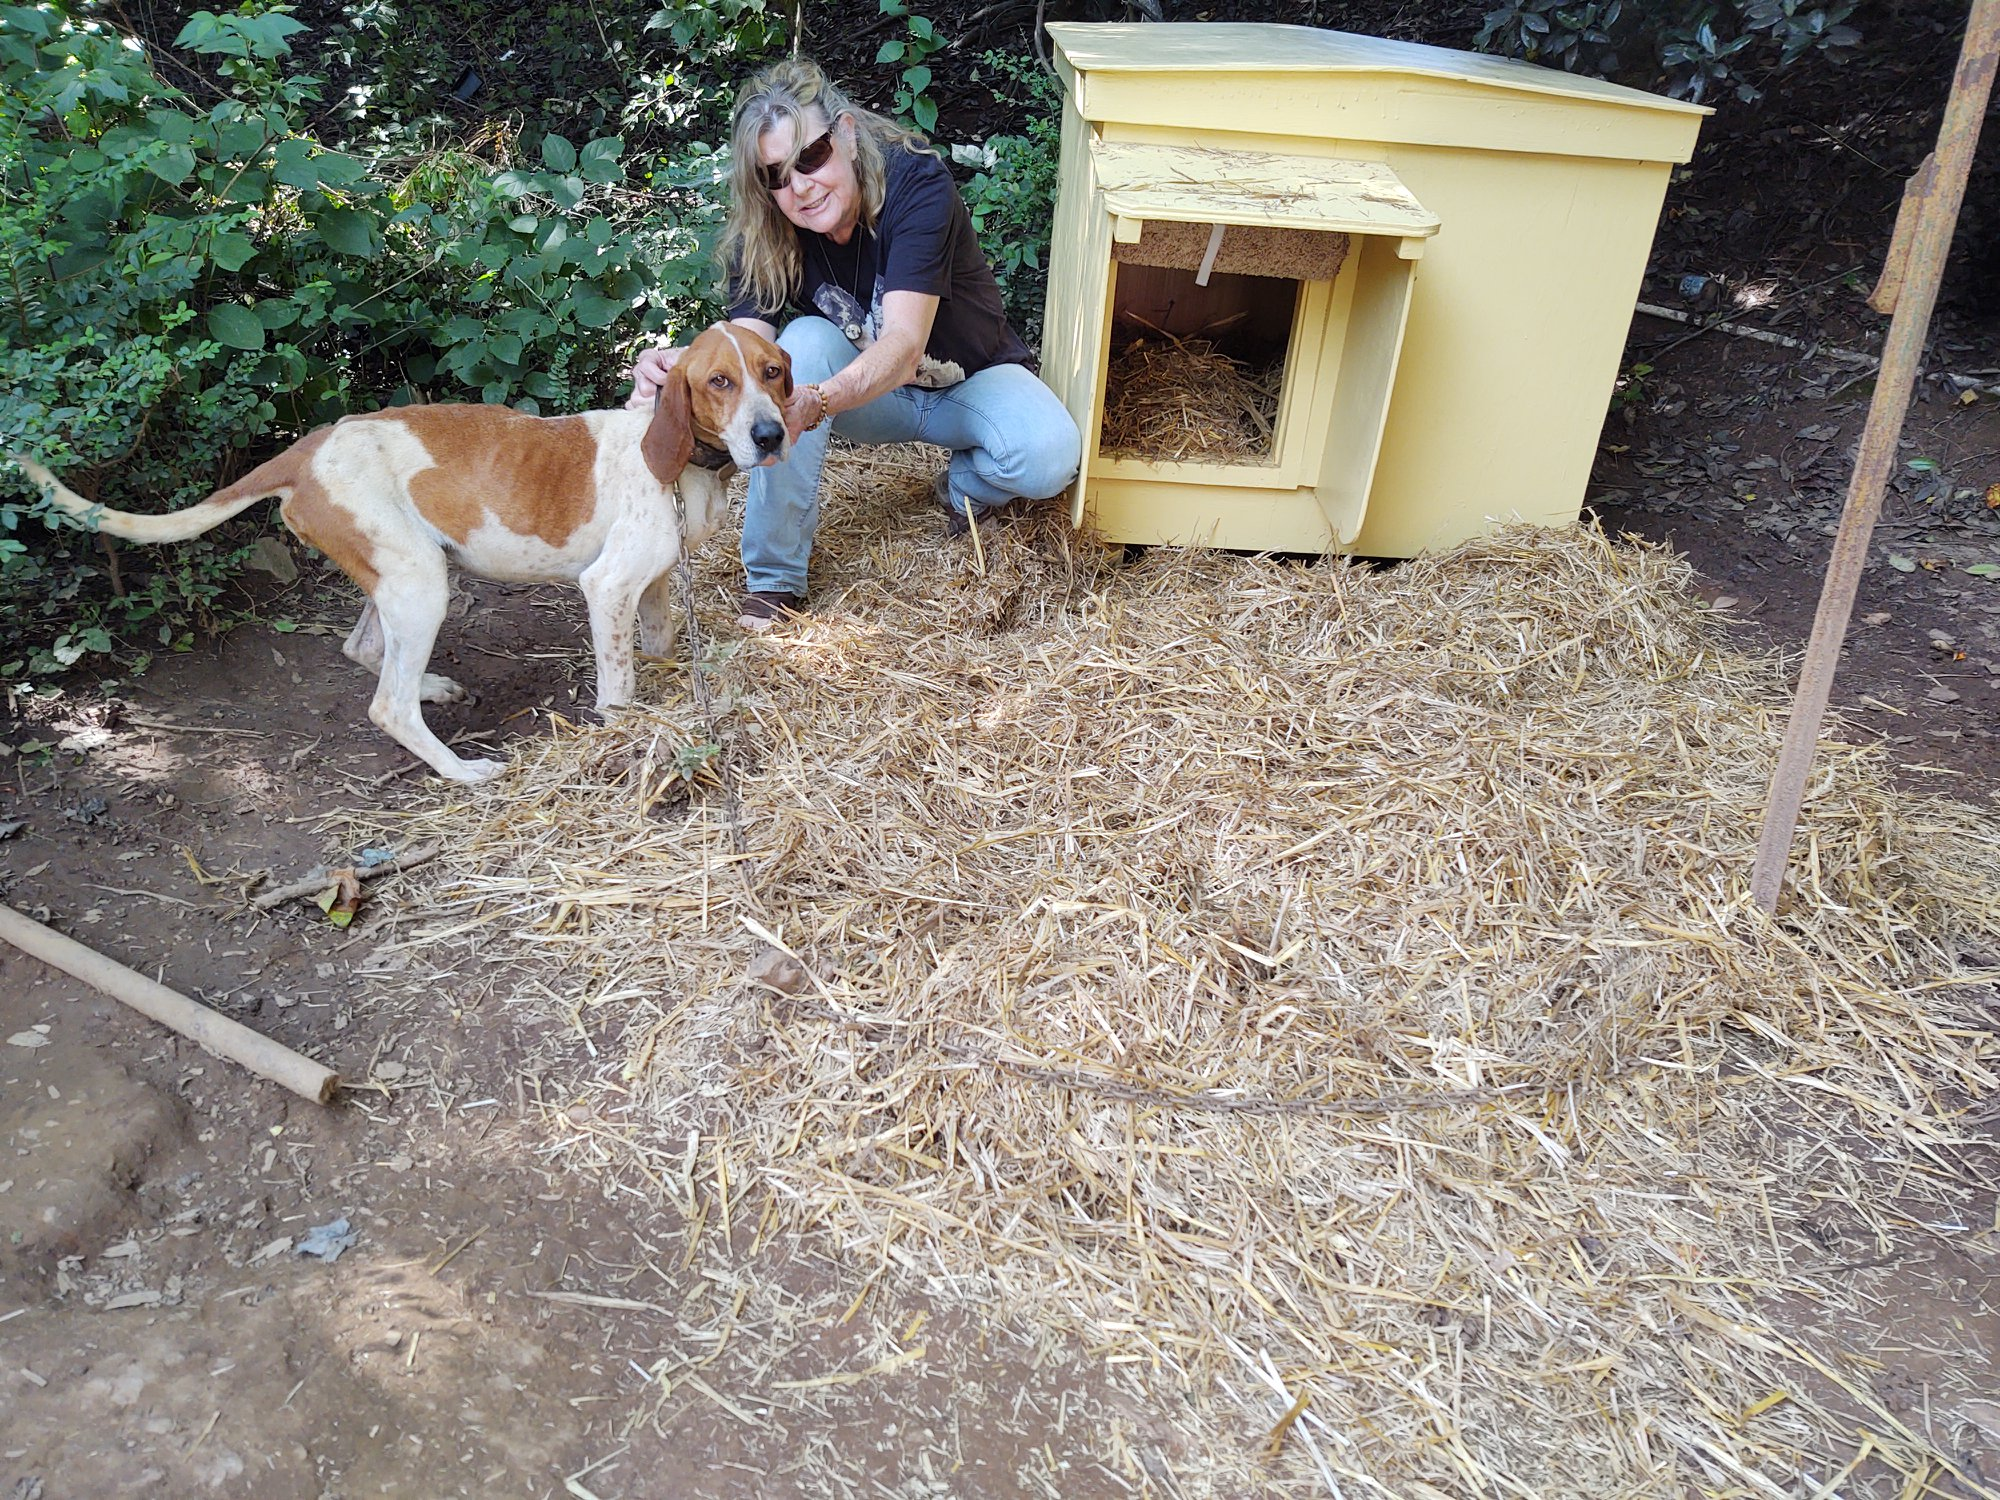 Photo courtesy Ervin Leonard. Brenda Nash, founder of Habitat for Hounds, poses with one of the dogs that the organization provided with a dog house.